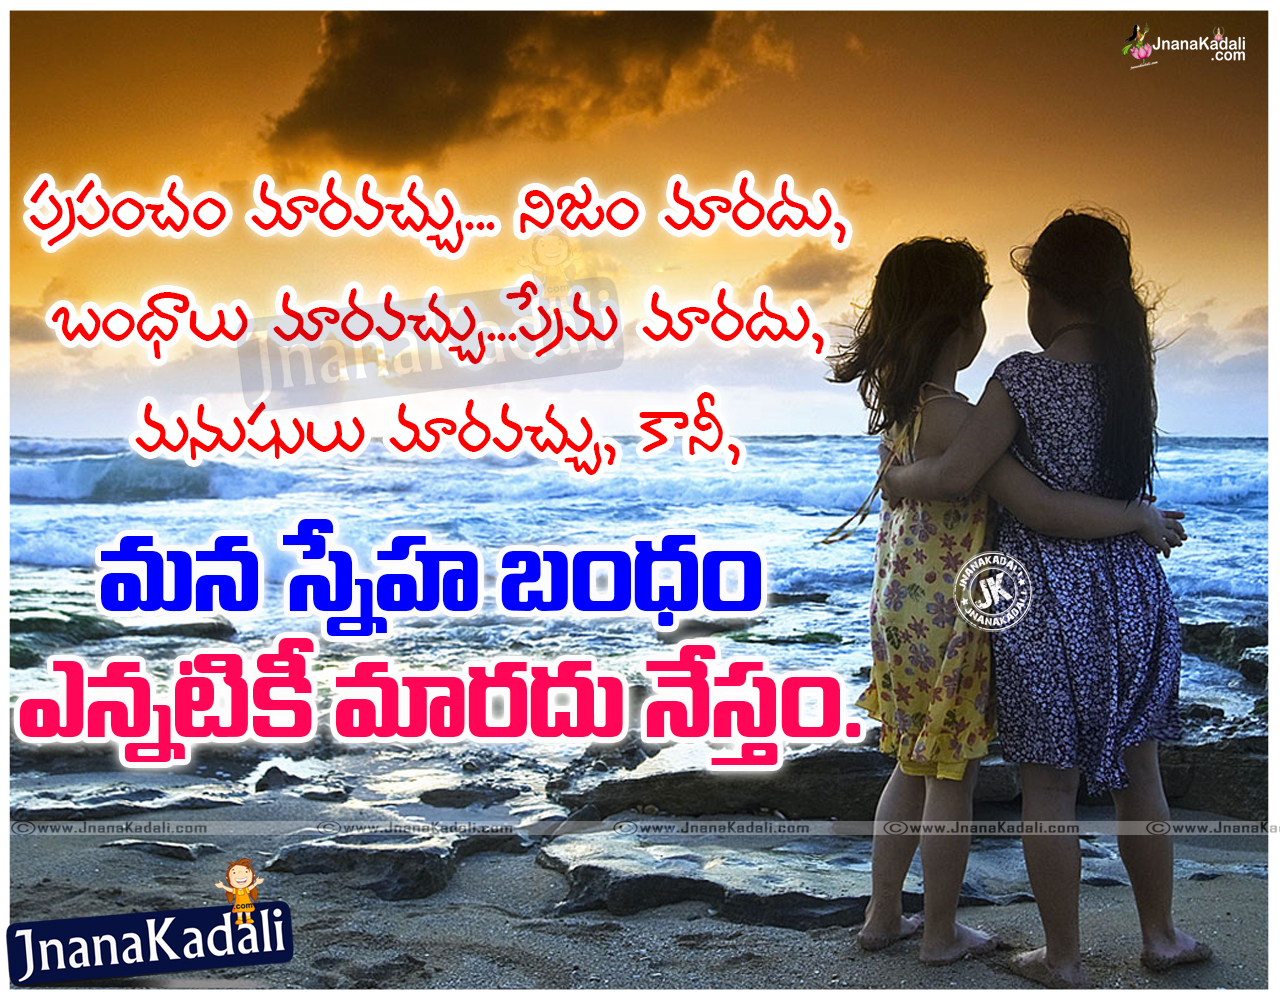 Cute Friendship Wallpapers With Messages Hindi Telugu Wonderful Friendship Meaning Quotations And Nice